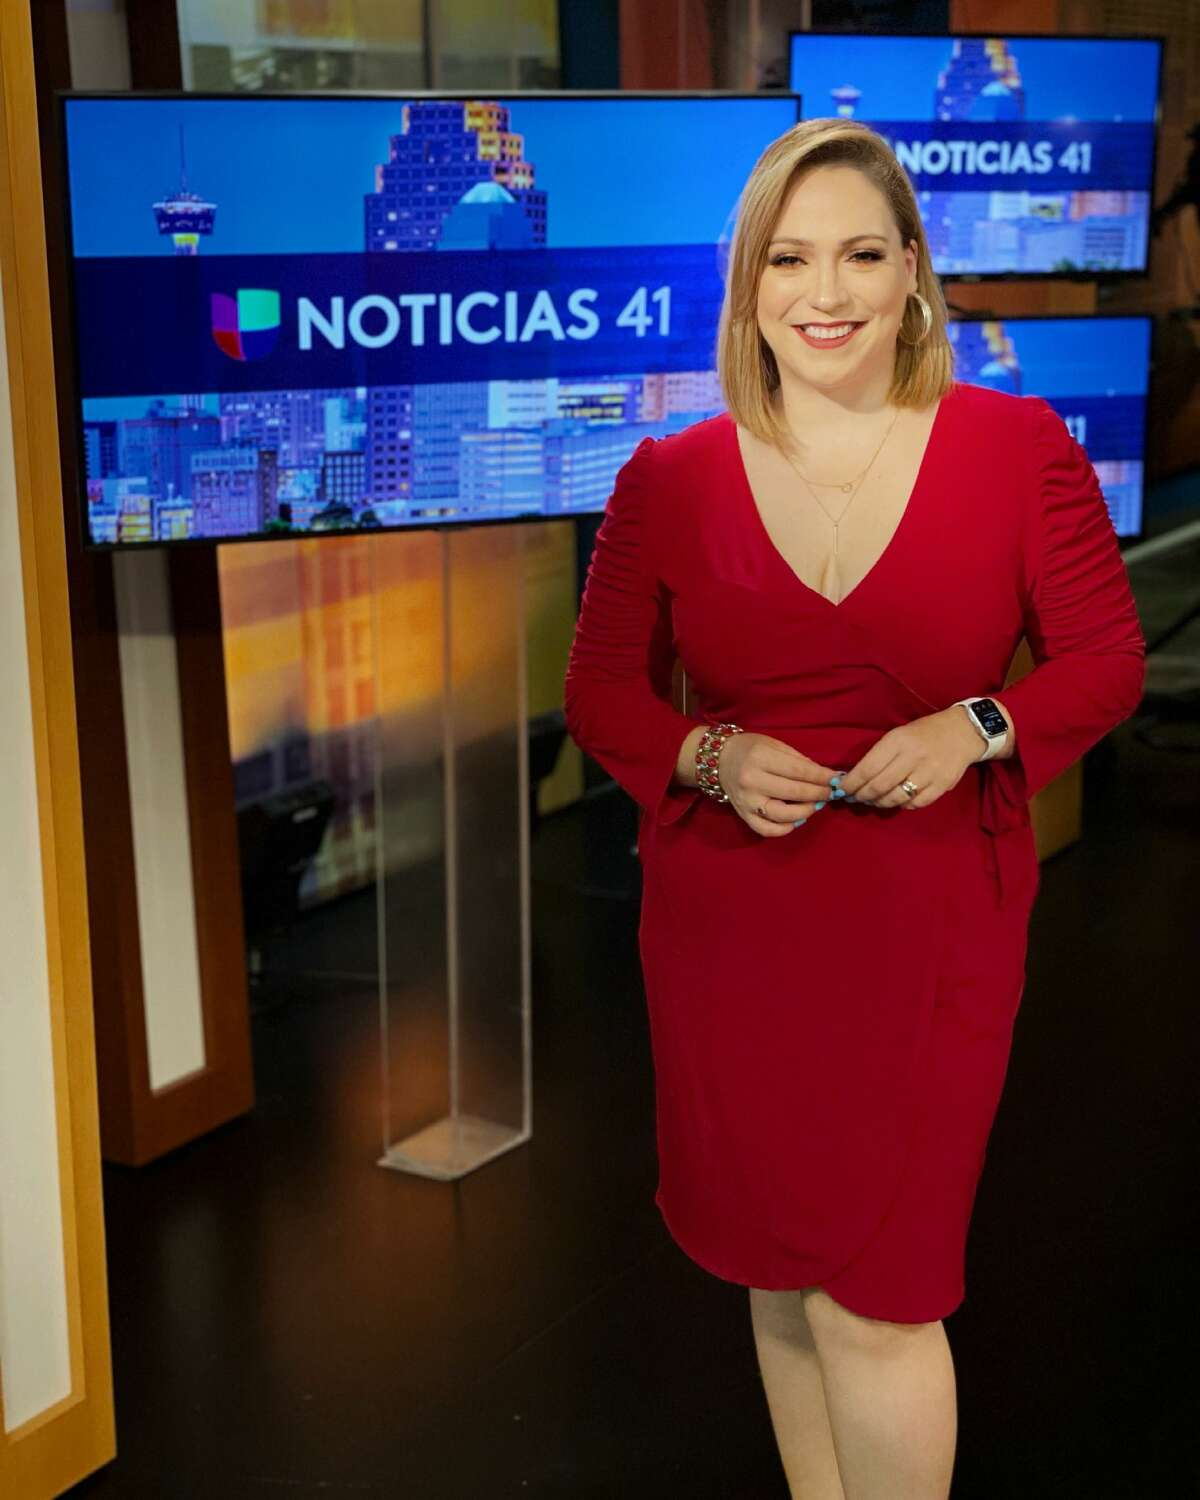 """MYRNA SALAS Back in April,Univision anchor Myrna Salas underwent a shift change, moving from the morning shift to the 5 p.m evening newscast alongside Brenda Jimenez and Meteorologist Gabriel Torres during the 10 p.m news update. """"I think it's a healthier change. Before I slept when I could. Now I sleep often,"""" Salas previously told MySA."""